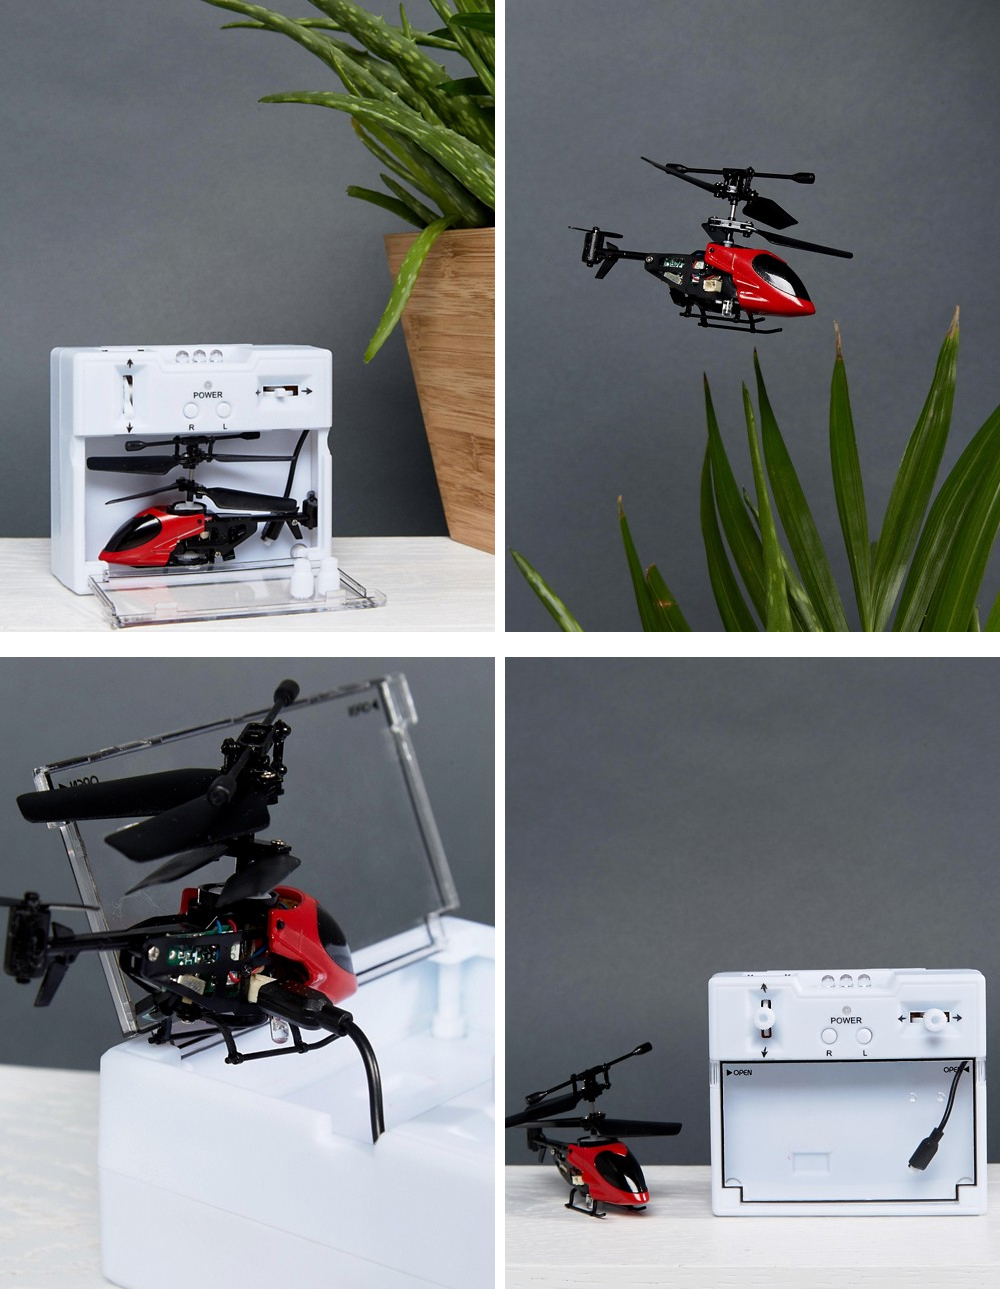 Remote control Valentine helicopter